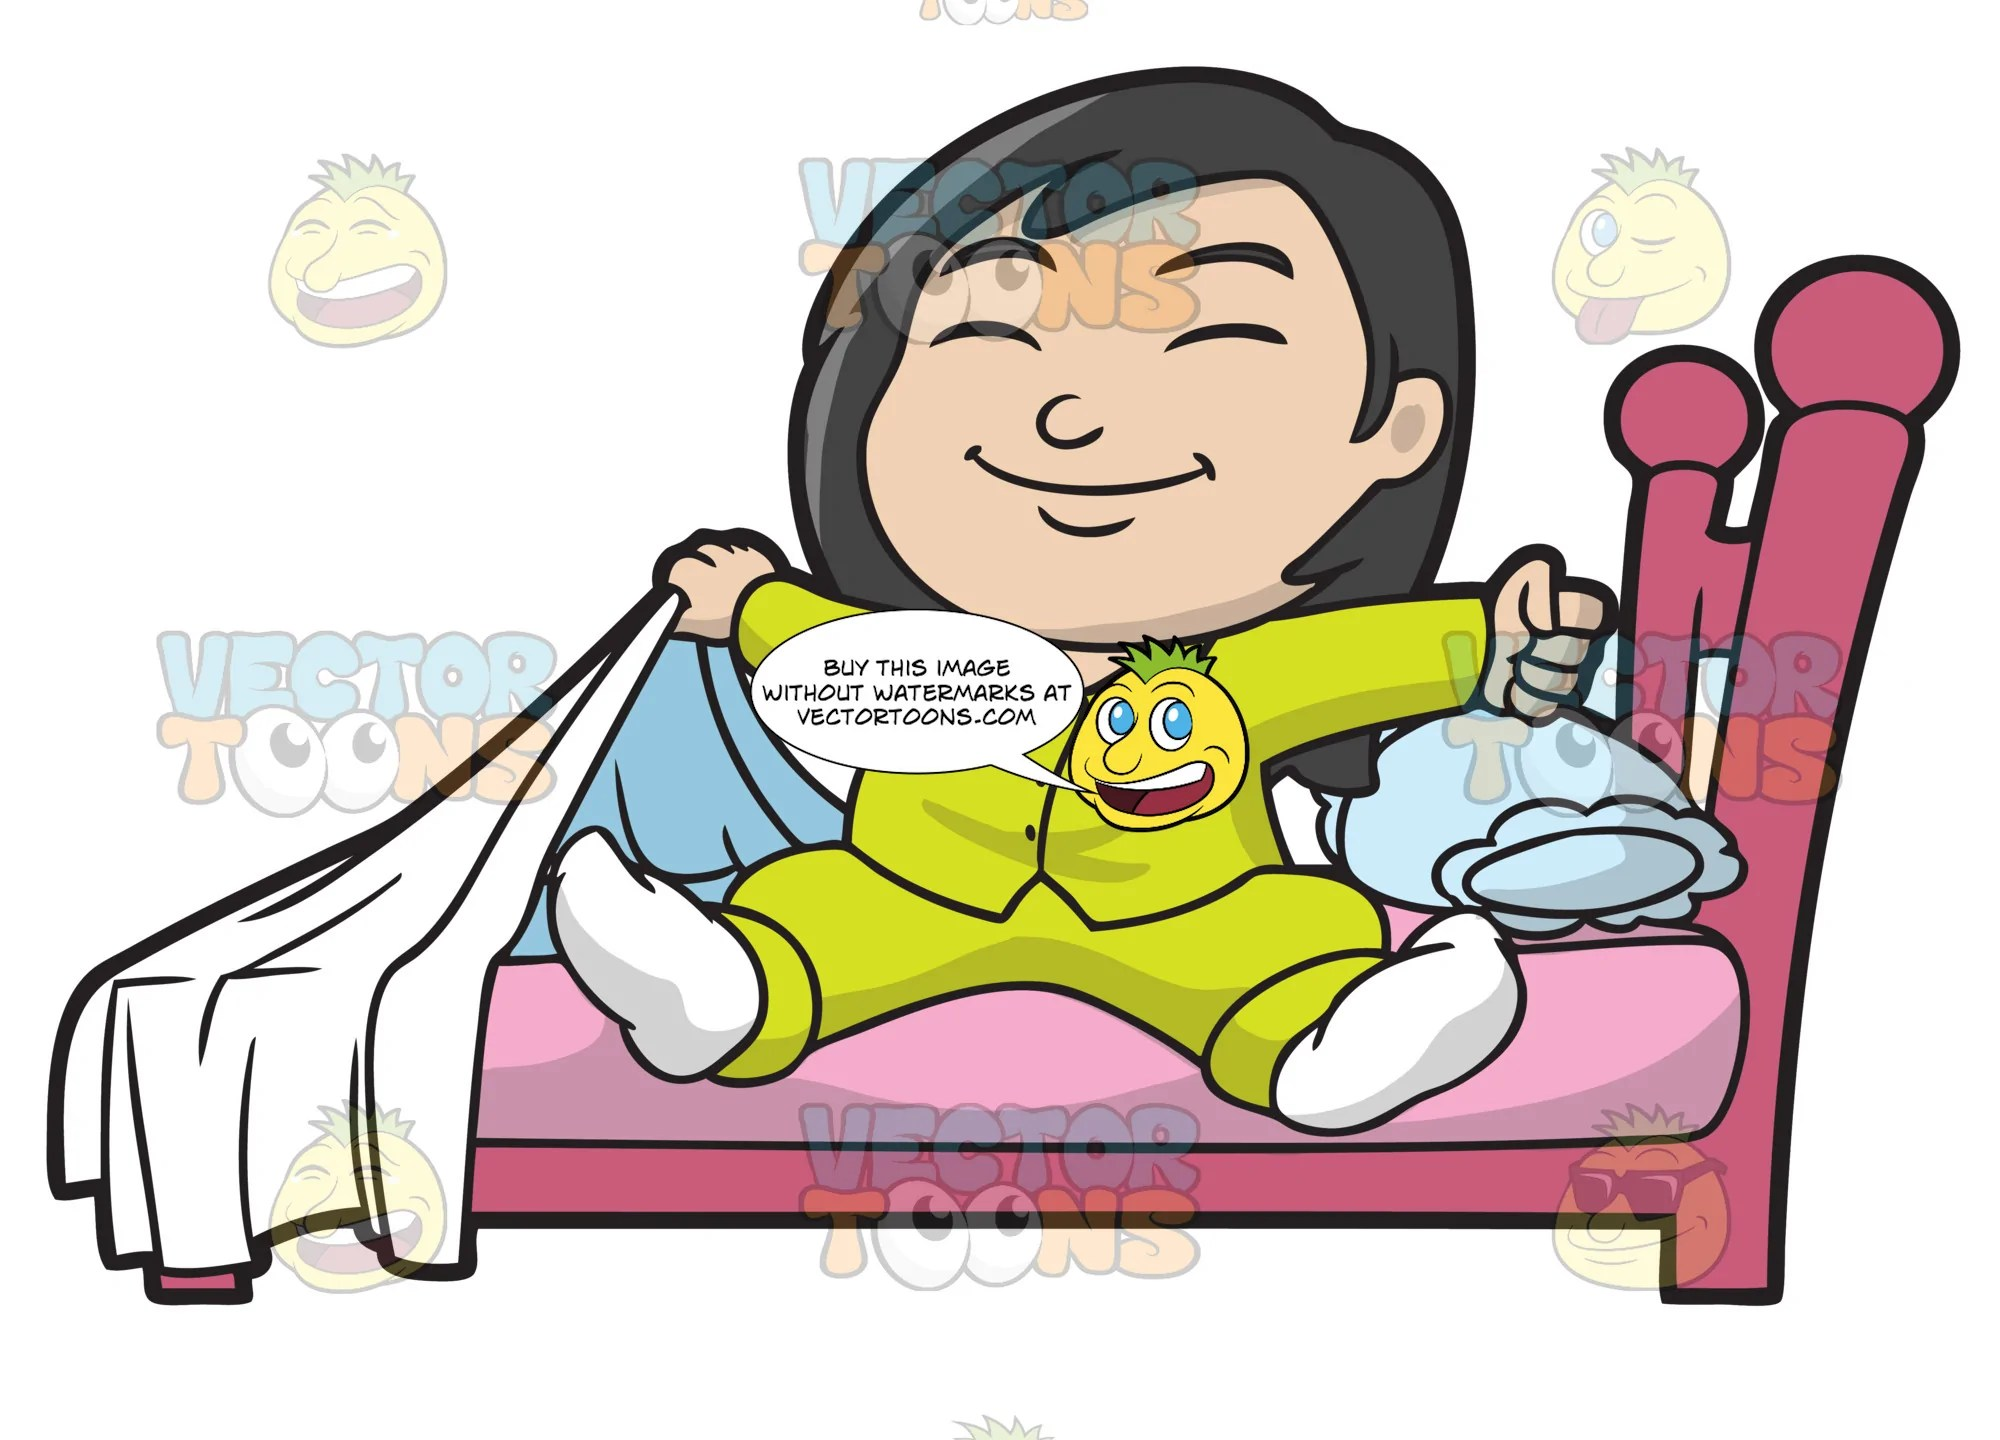 hight resolution of a happy girl stretches her body upon waking up clipart cartoons by vectortoons